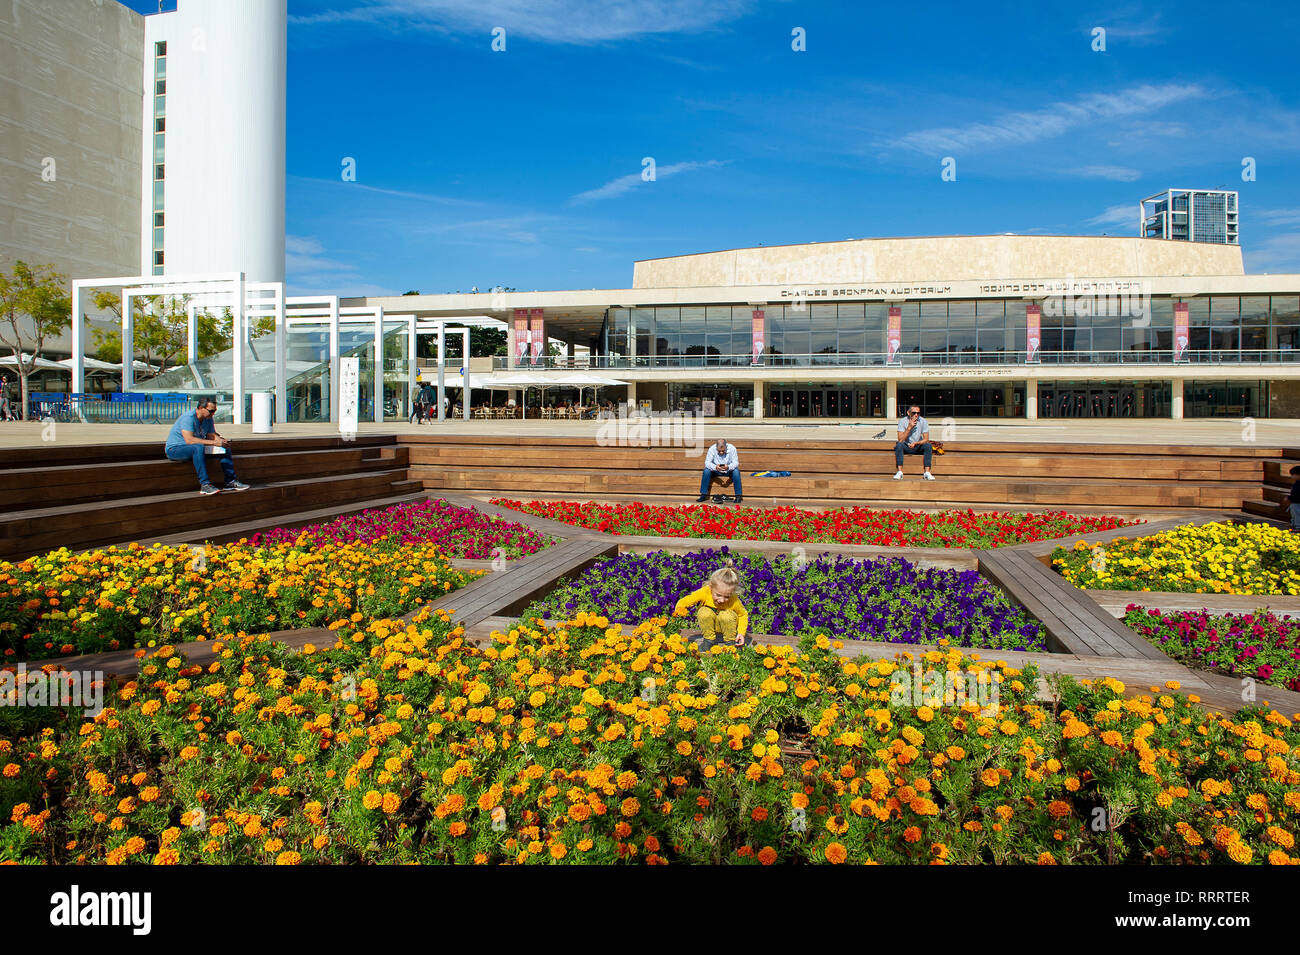 Colourful flower garden at HaBima square, Tel Aviv. In the background, Charles Bronfman Auditorium - Stock Image